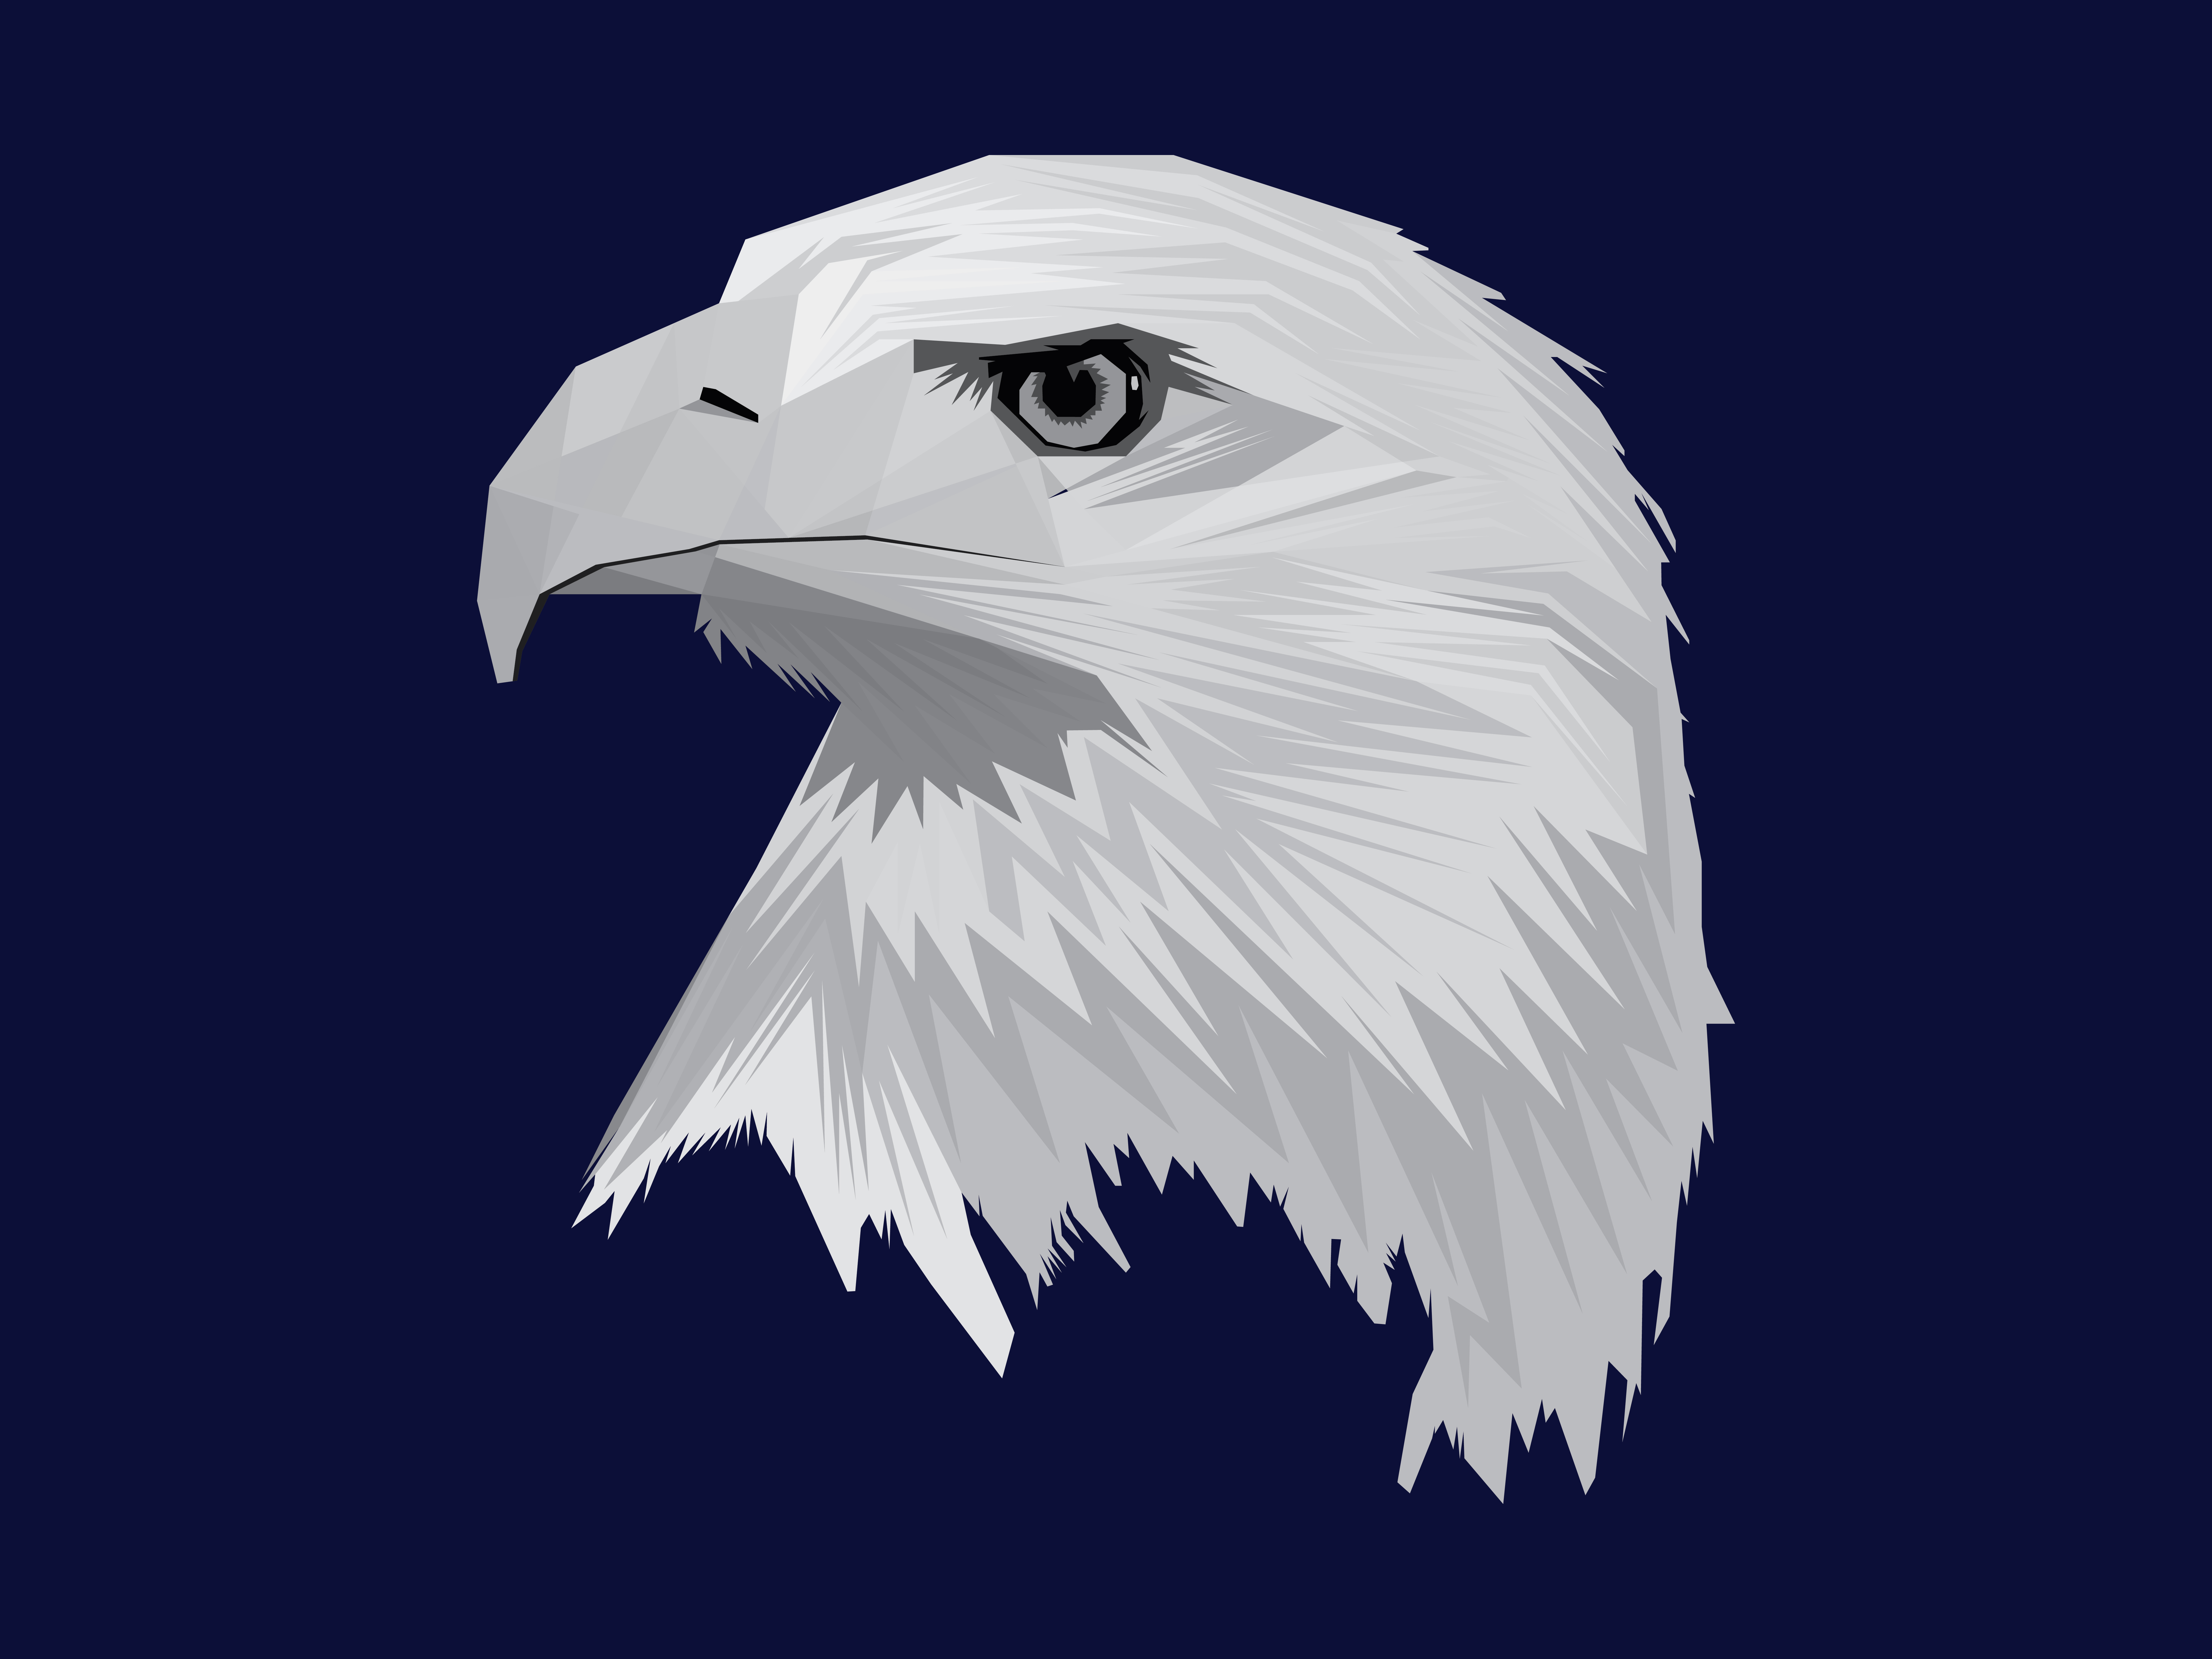 Download Free Eagle Gray Graphic By Rafcreative3 Creative Fabrica for Cricut Explore, Silhouette and other cutting machines.